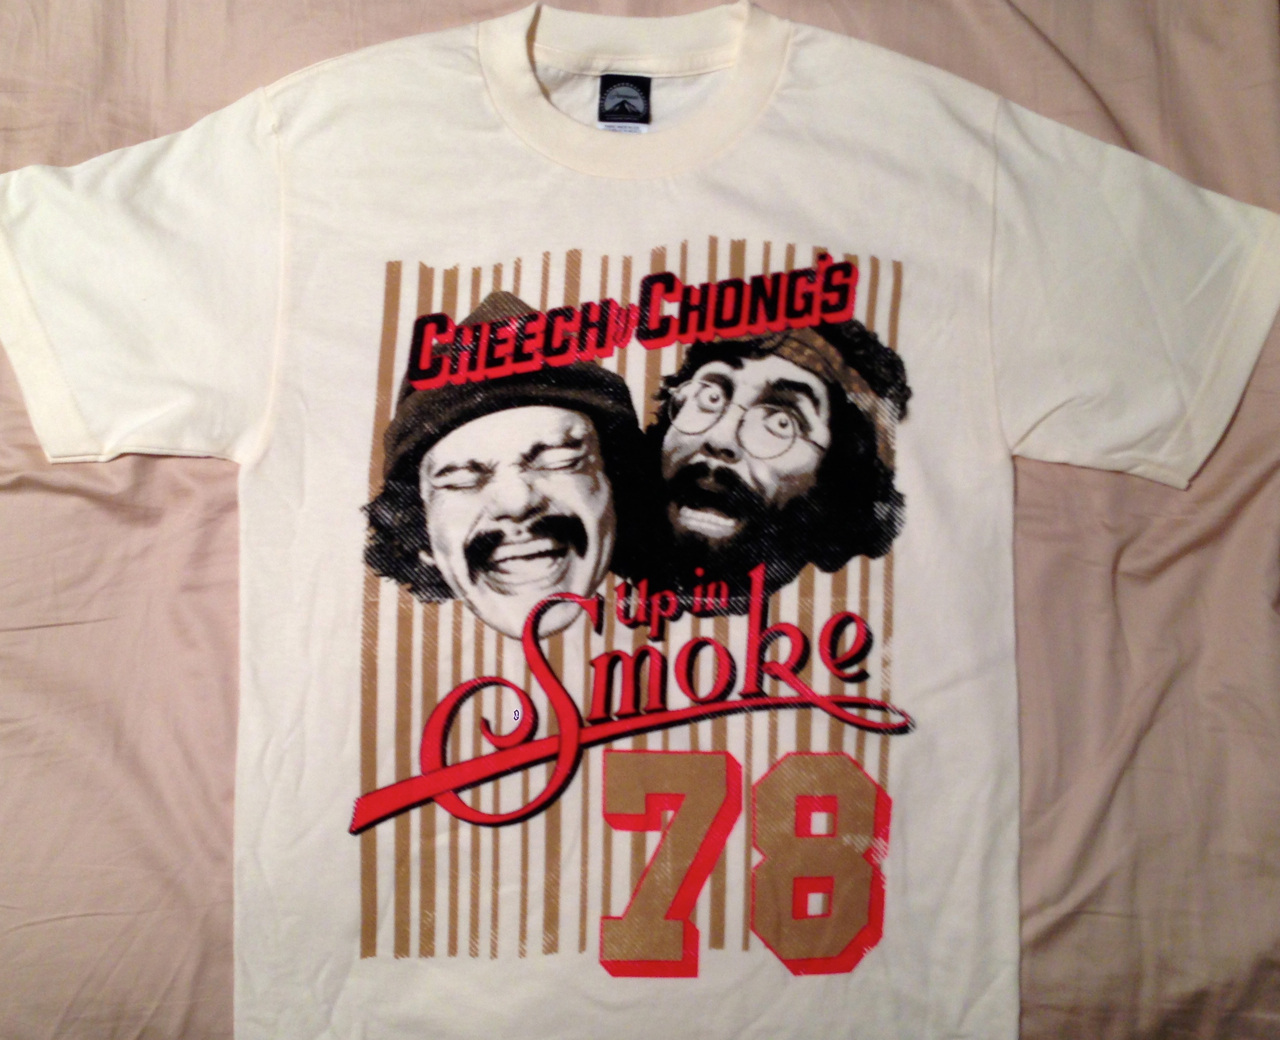 Cheech And Chong Fan News: Police Need Help Finding